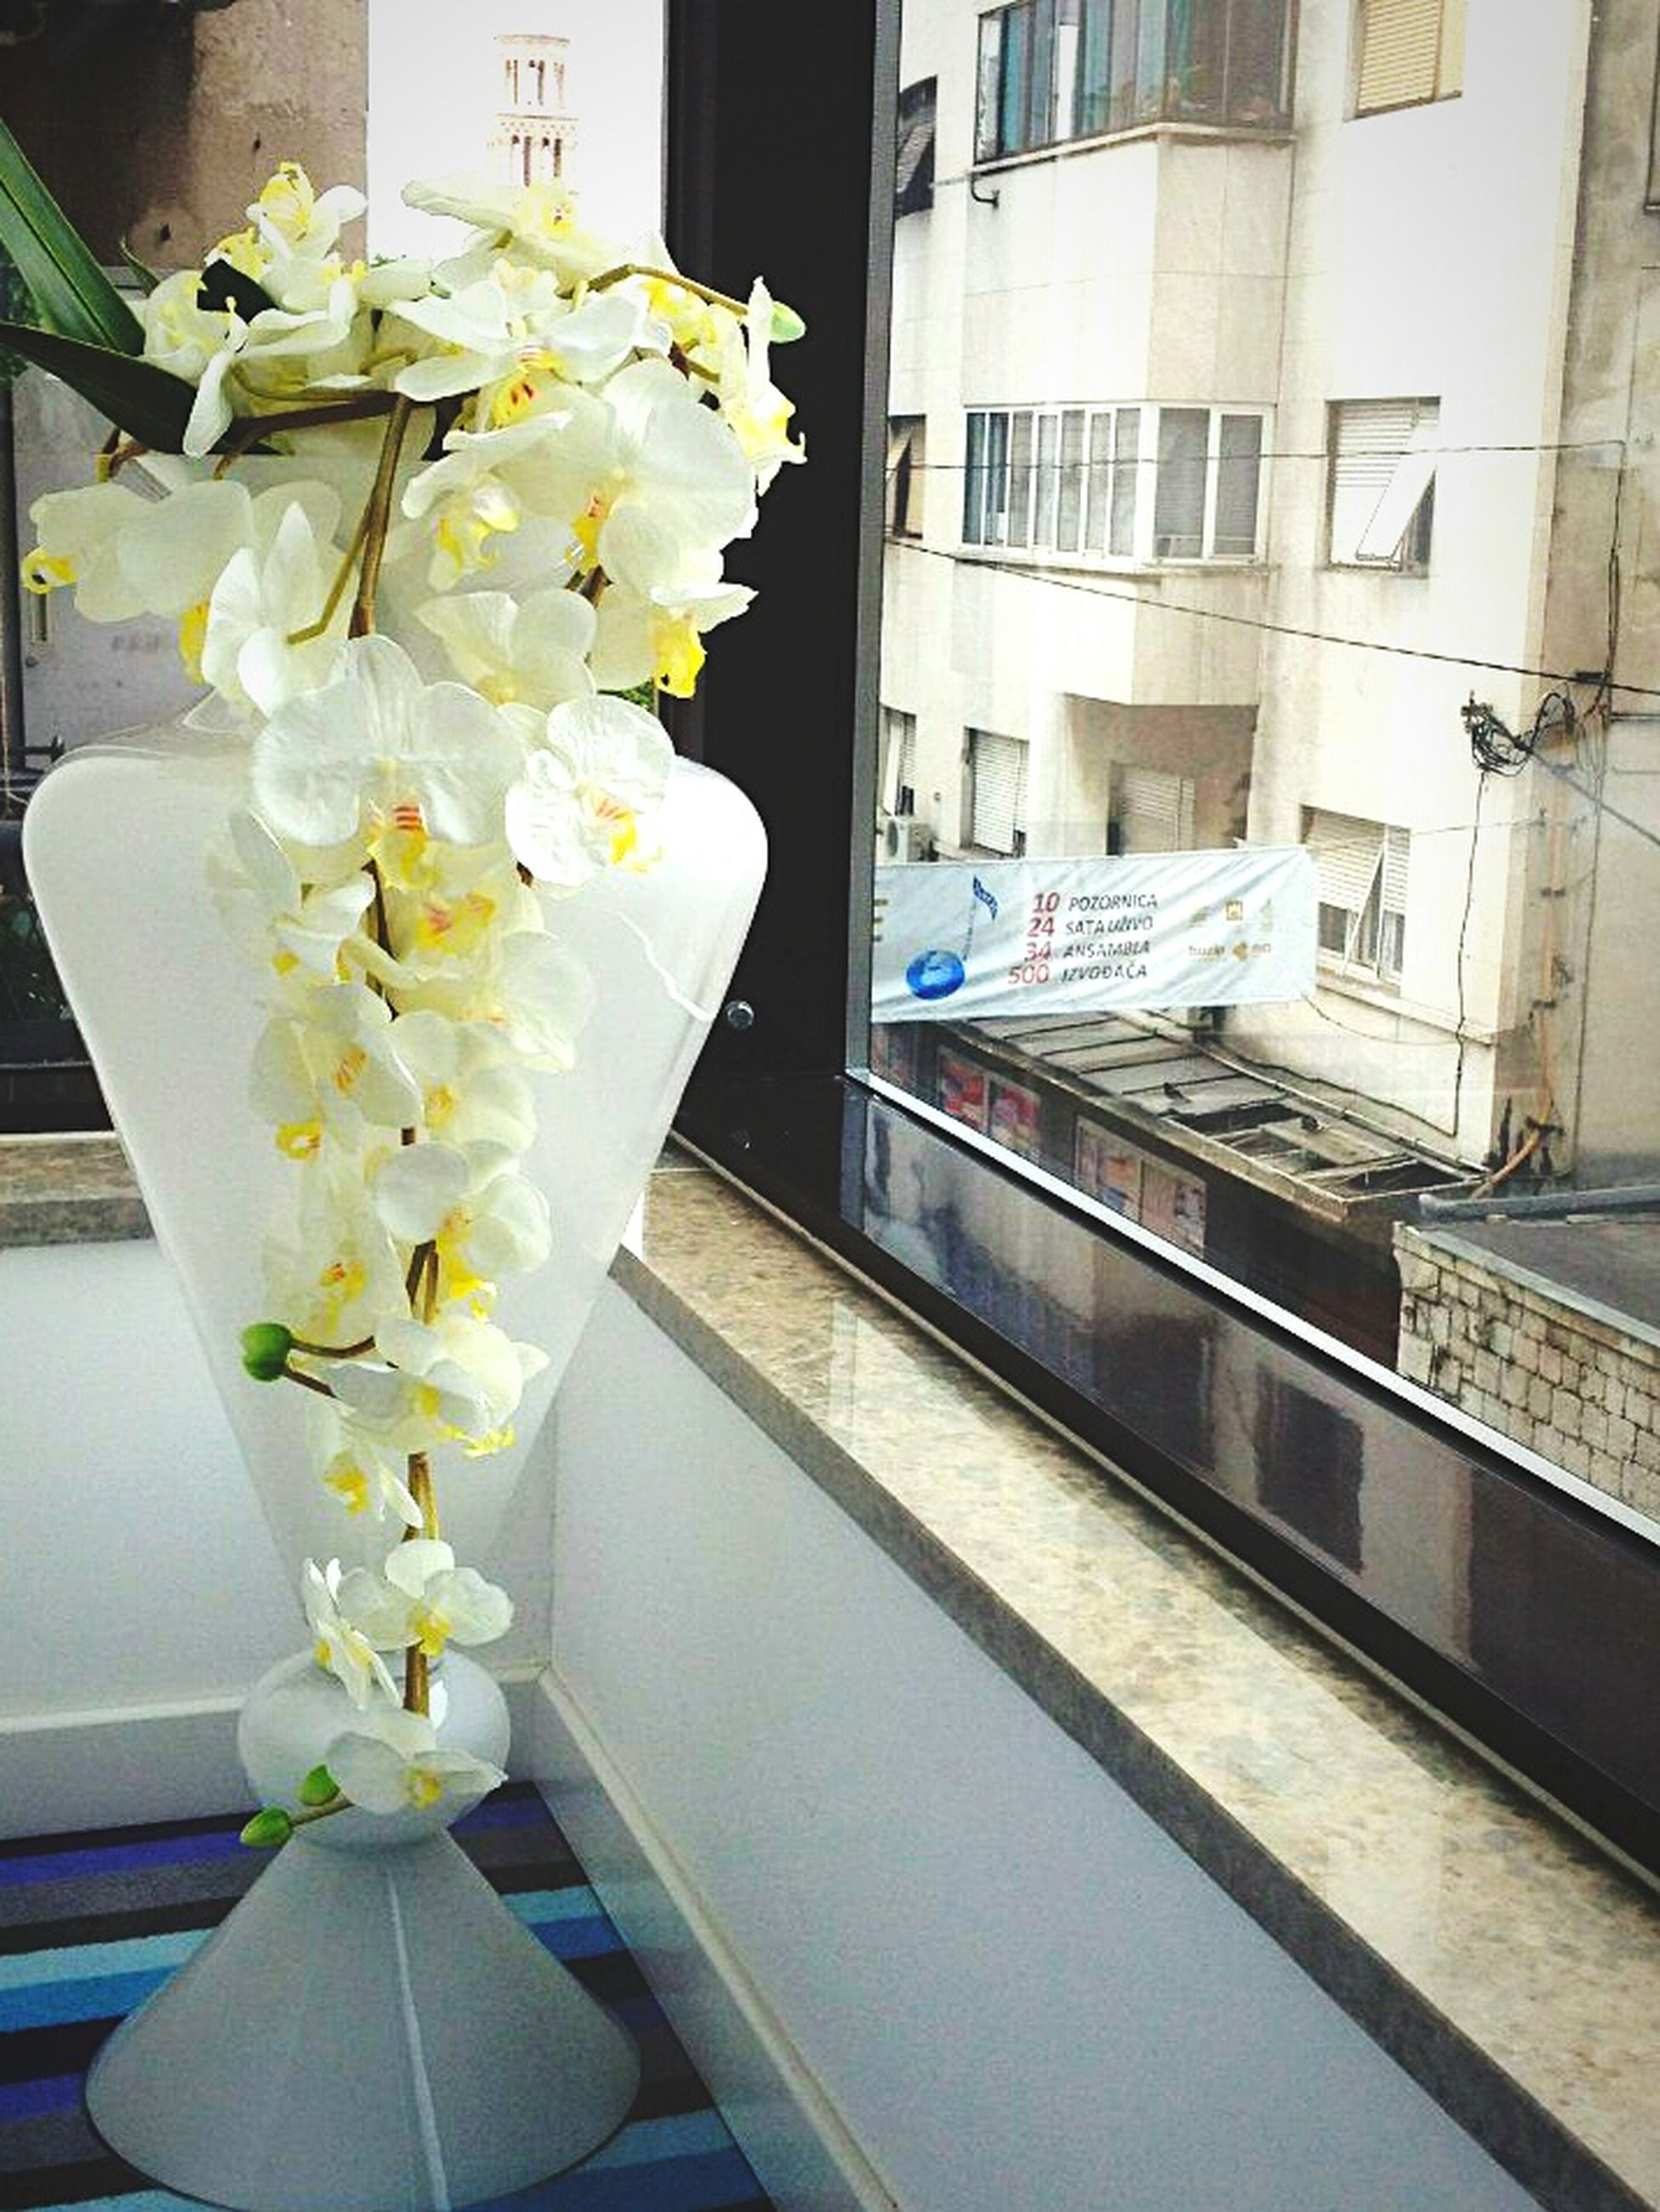 flower, indoors, window, architecture, freshness, built structure, vase, fragility, potted plant, growth, glass - material, white color, plant, petal, flower pot, no people, building exterior, day, high angle view, sunlight